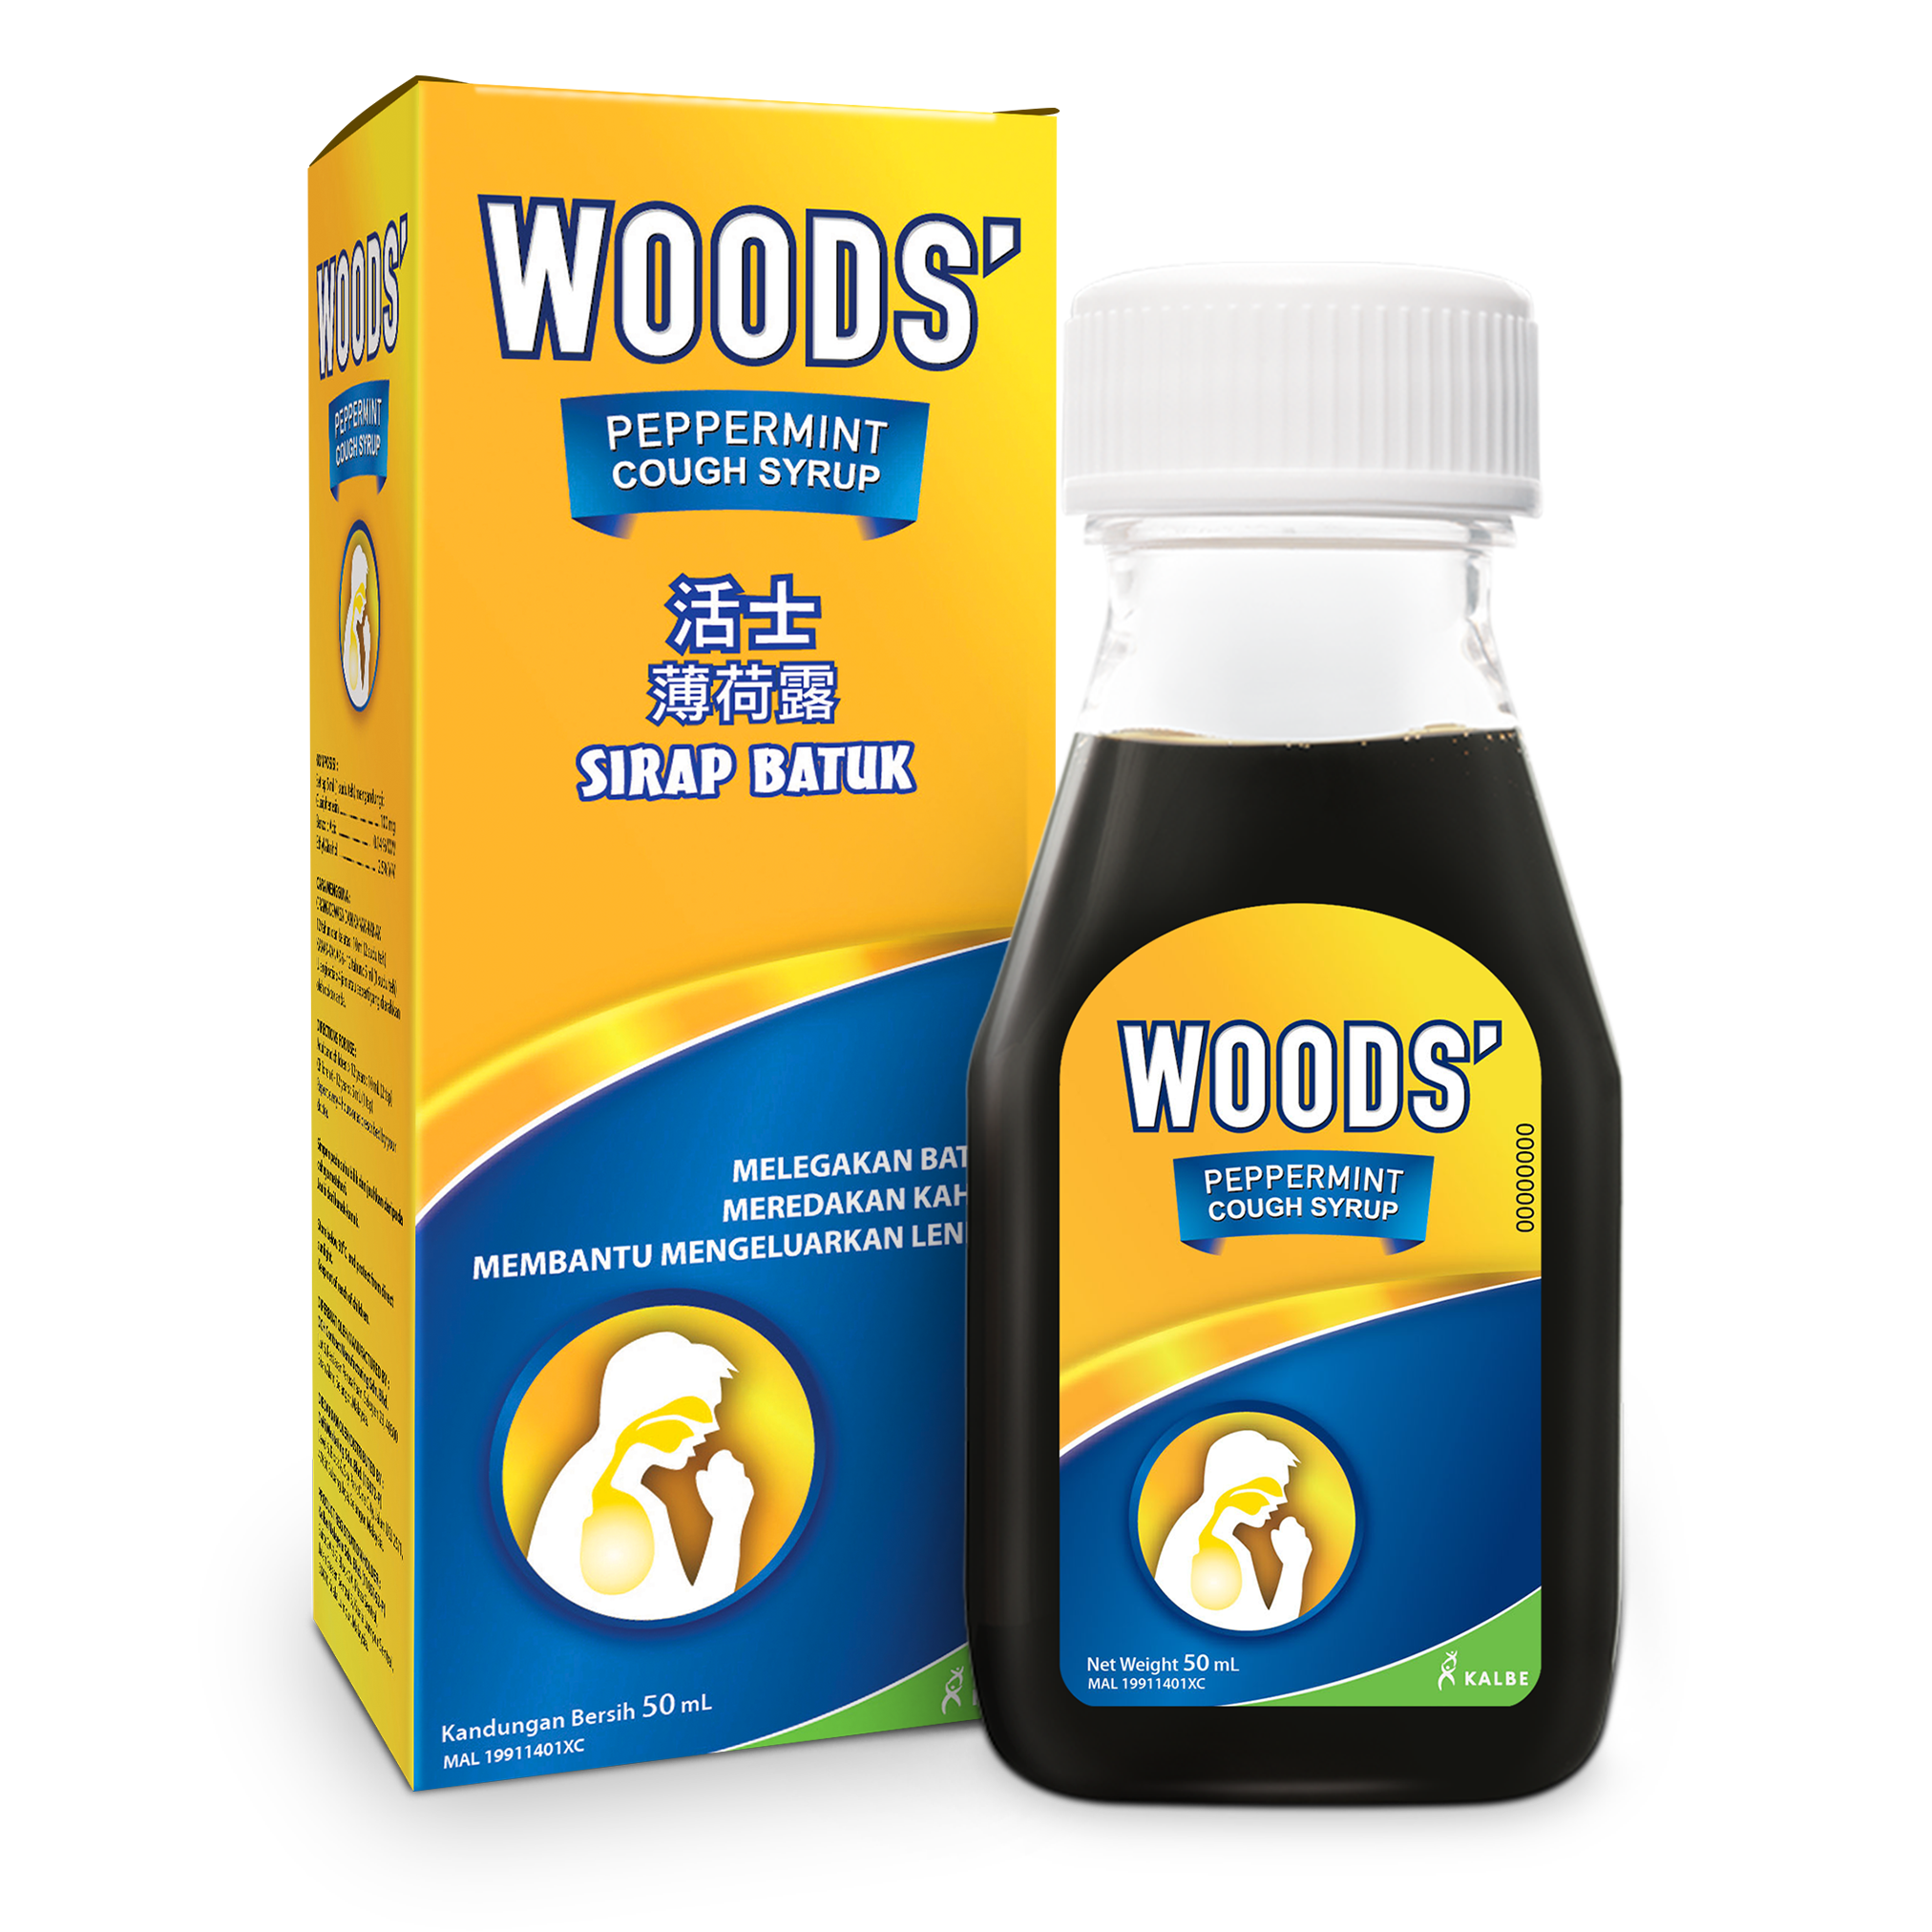 WOODS' PEPPERMINT COUGH SYRUP ADULT 50ML